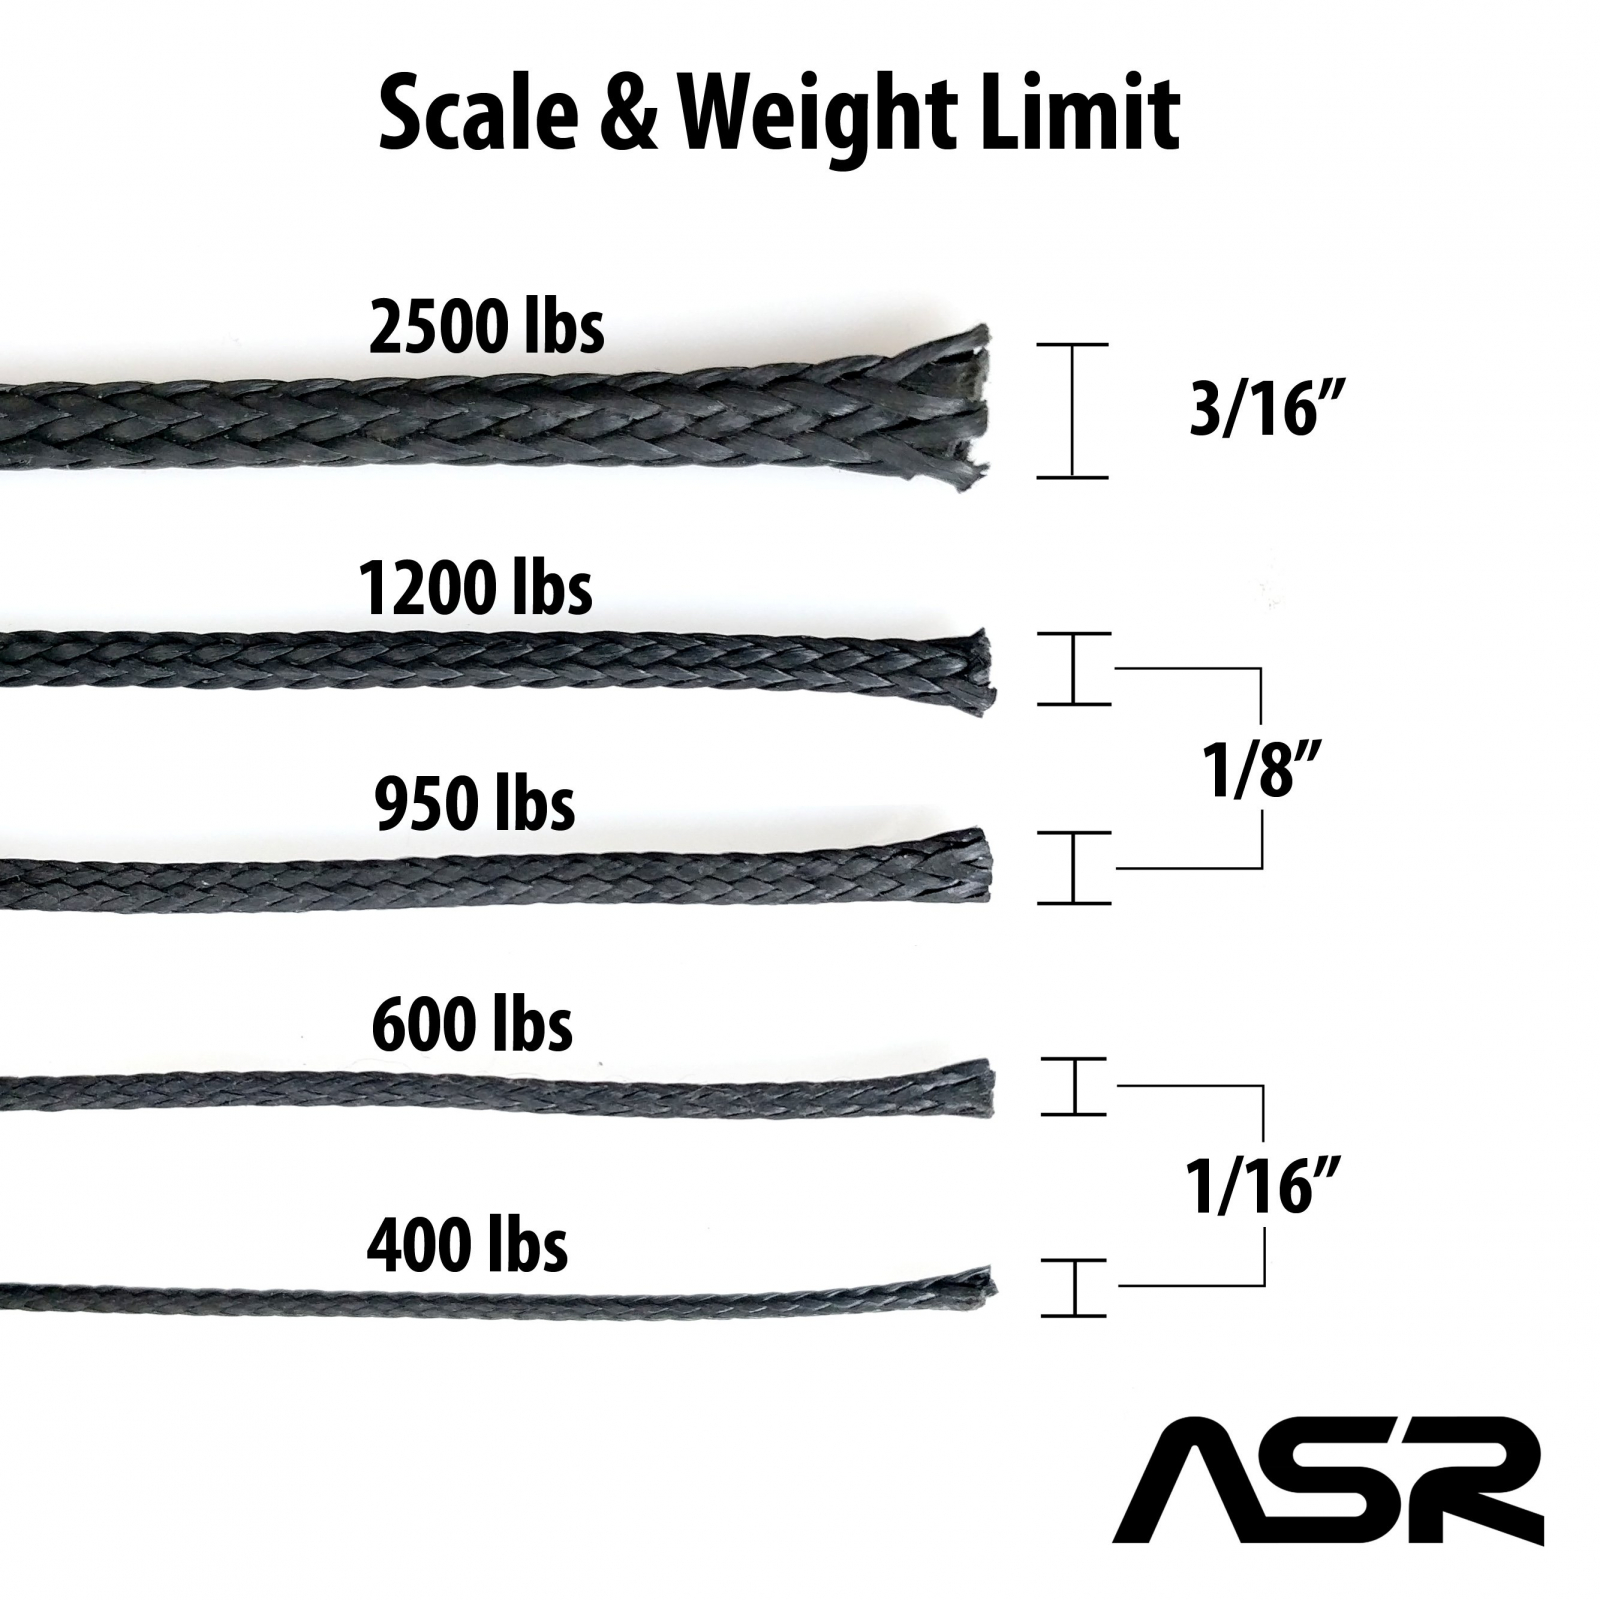 Braided Vectran Survival Sport Tactical Cord 600lb Breaking Strength